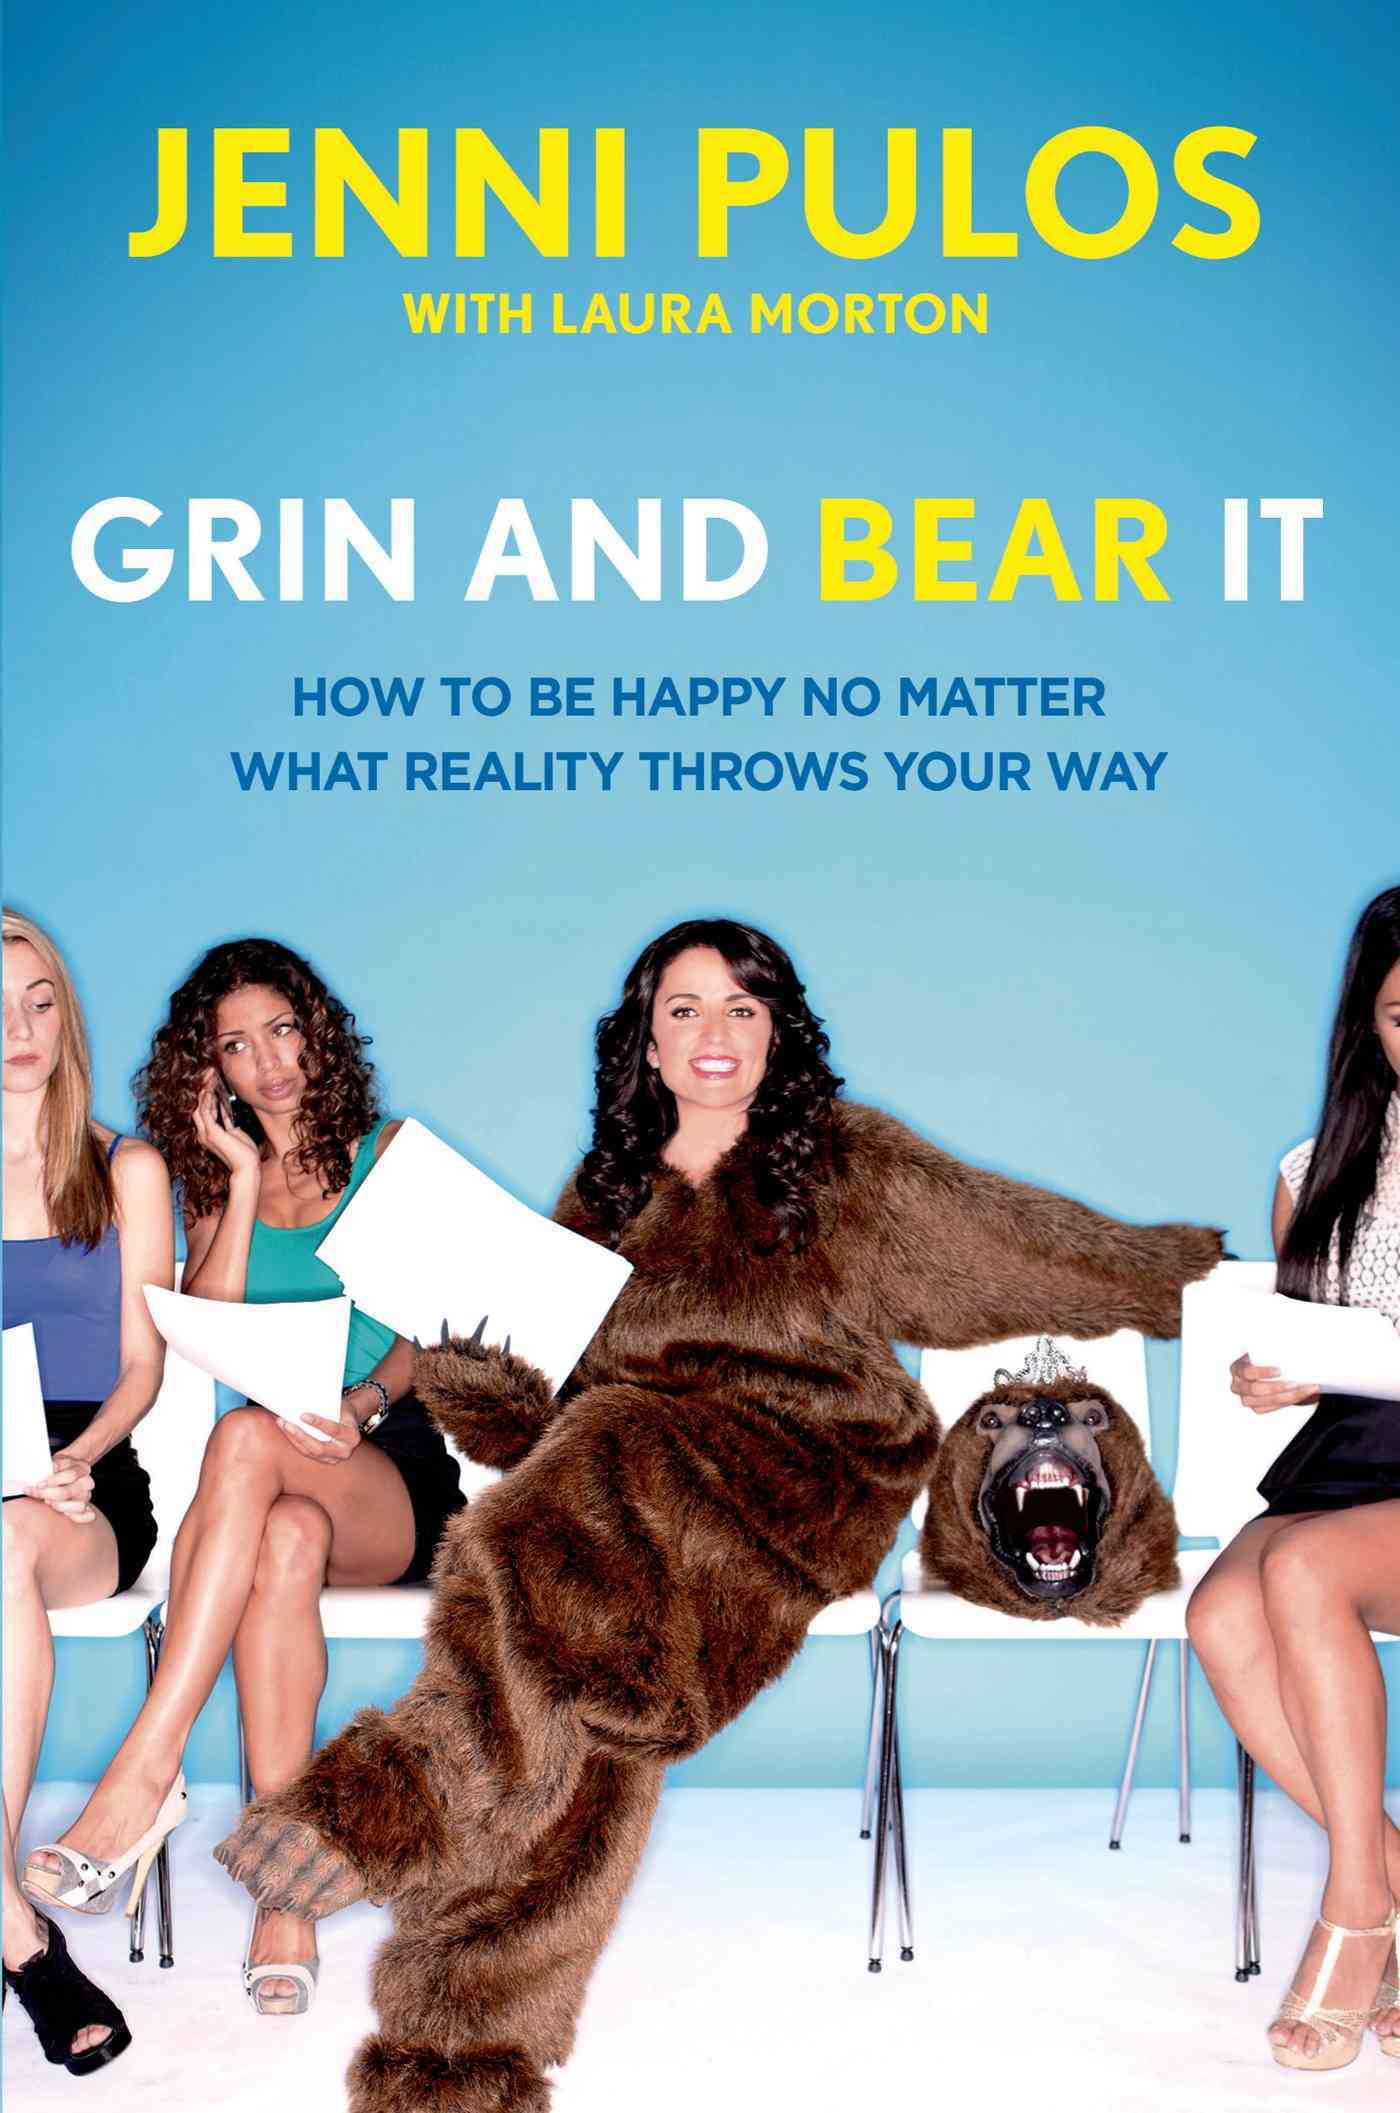 Grin and Bear It: How to Be Happy No Matter What Reality Throws Your Way (Hardcover)